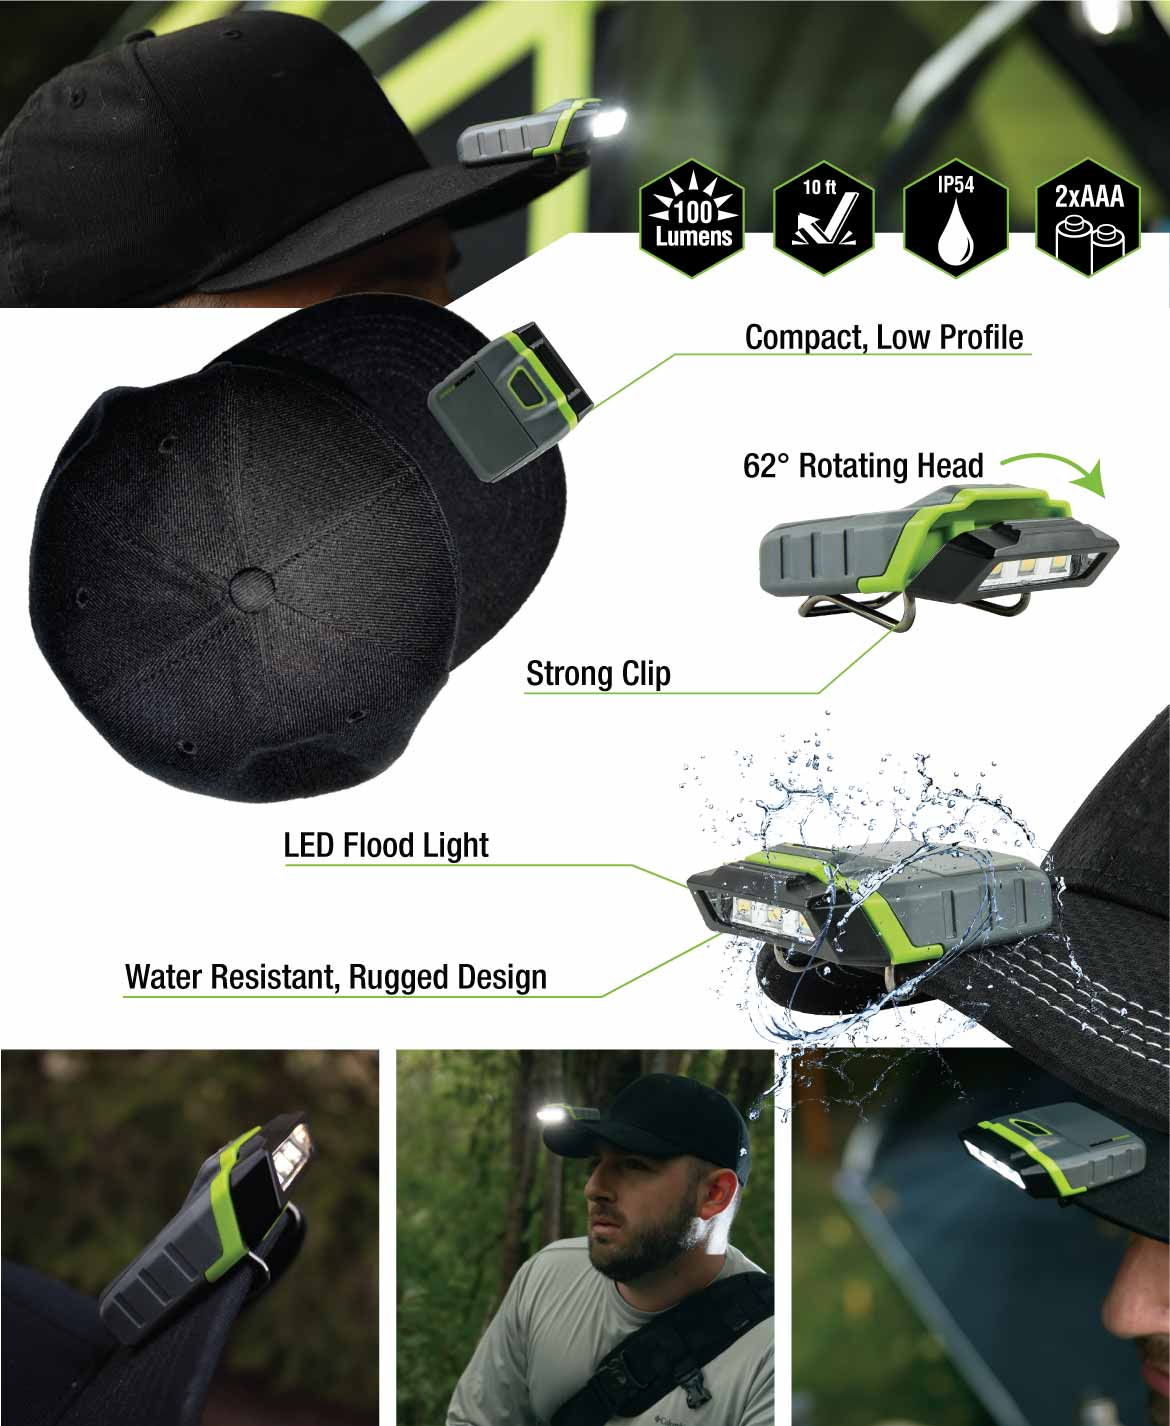 Extra features of the Blackfire Cap LED Clip Light